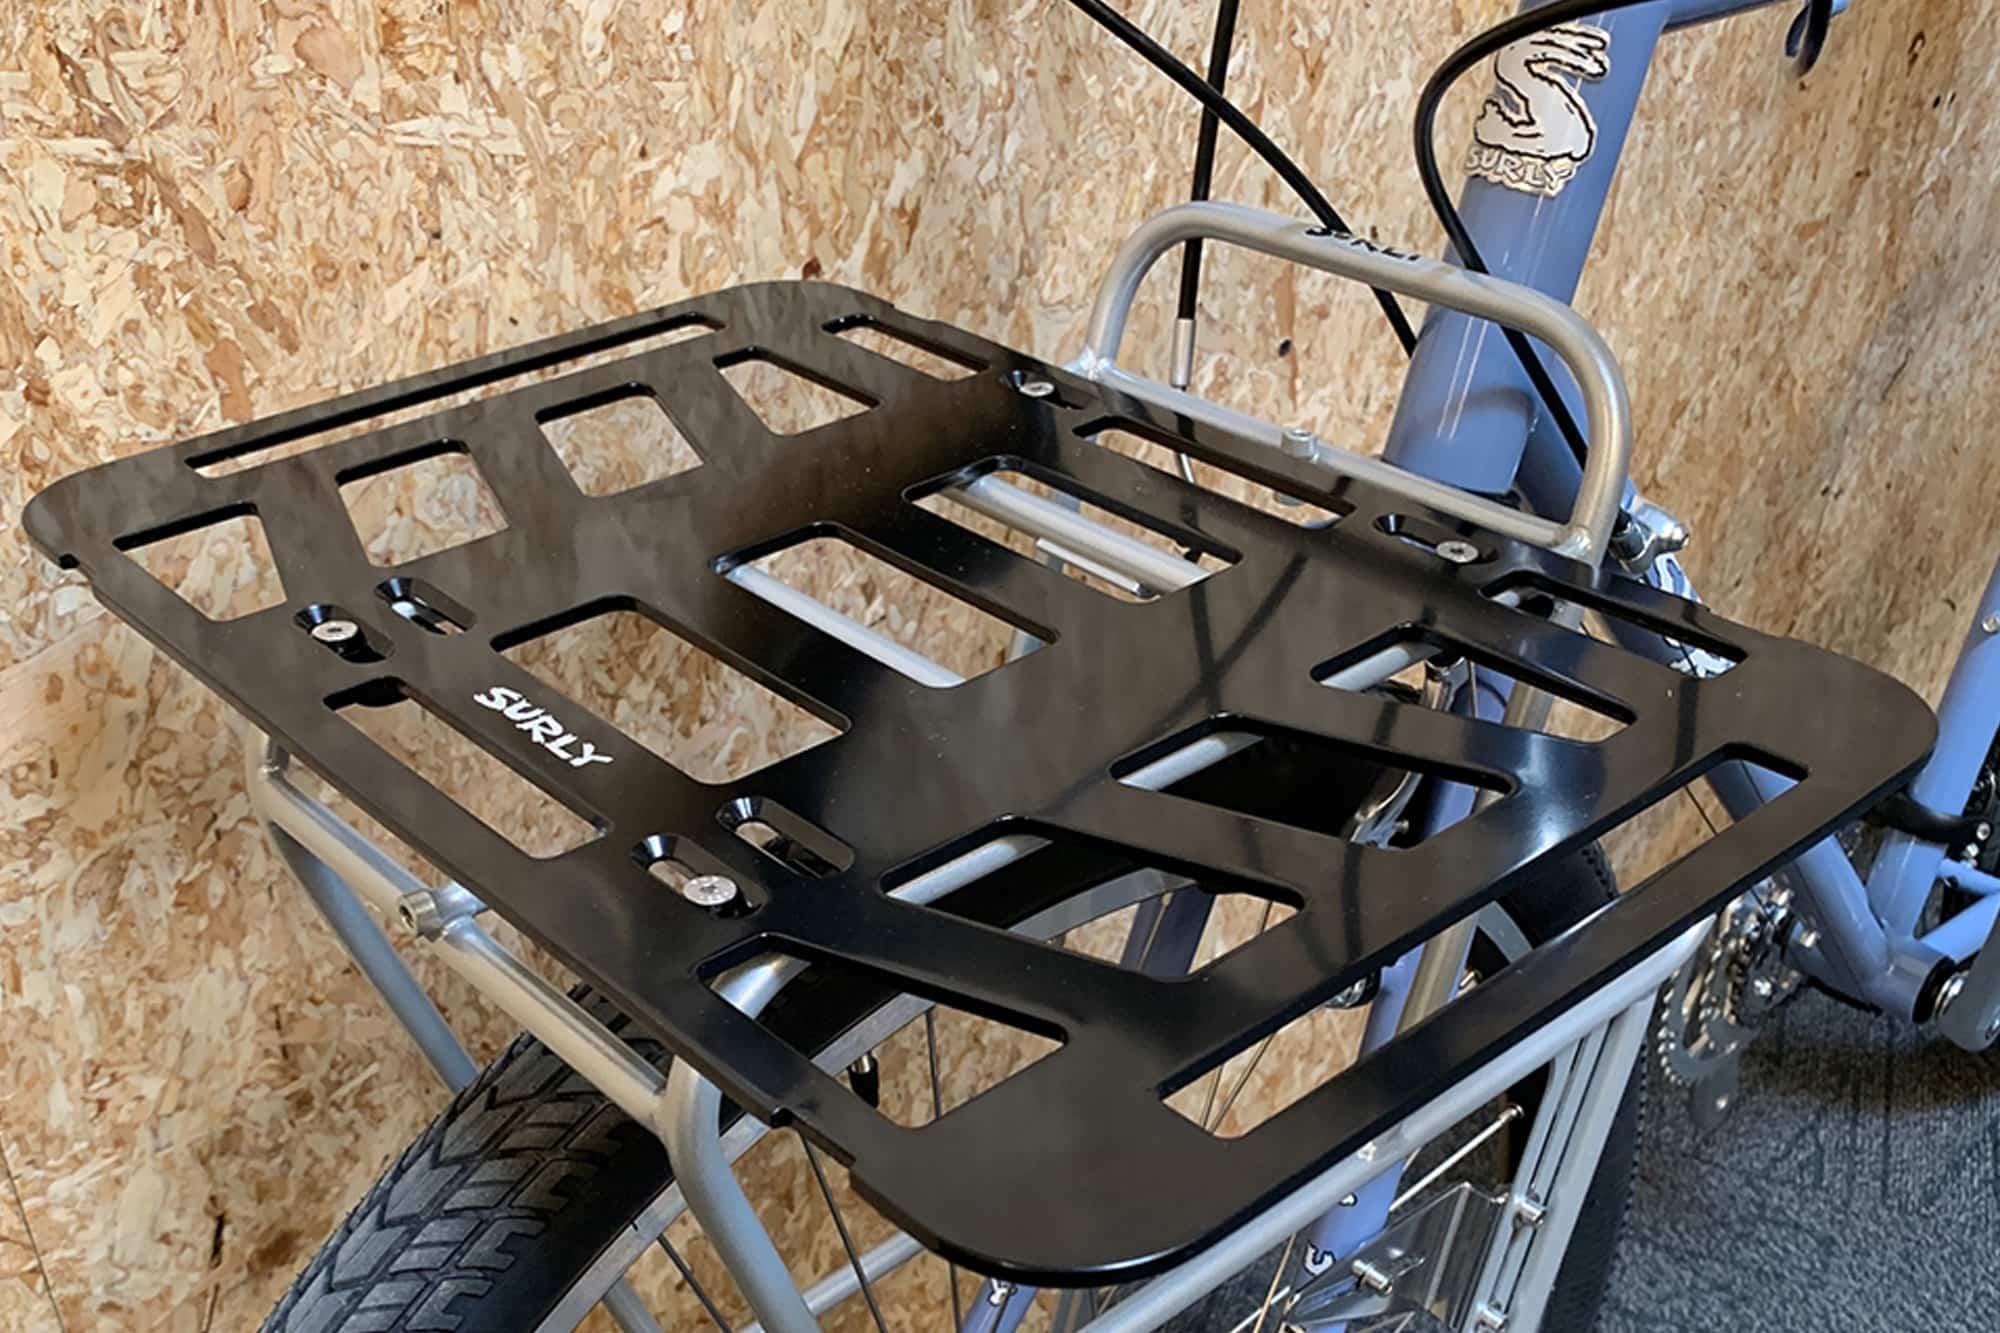 Surly Tv Tray Your Add On Bike Rack Solution Surly Bikes Surly Bikes